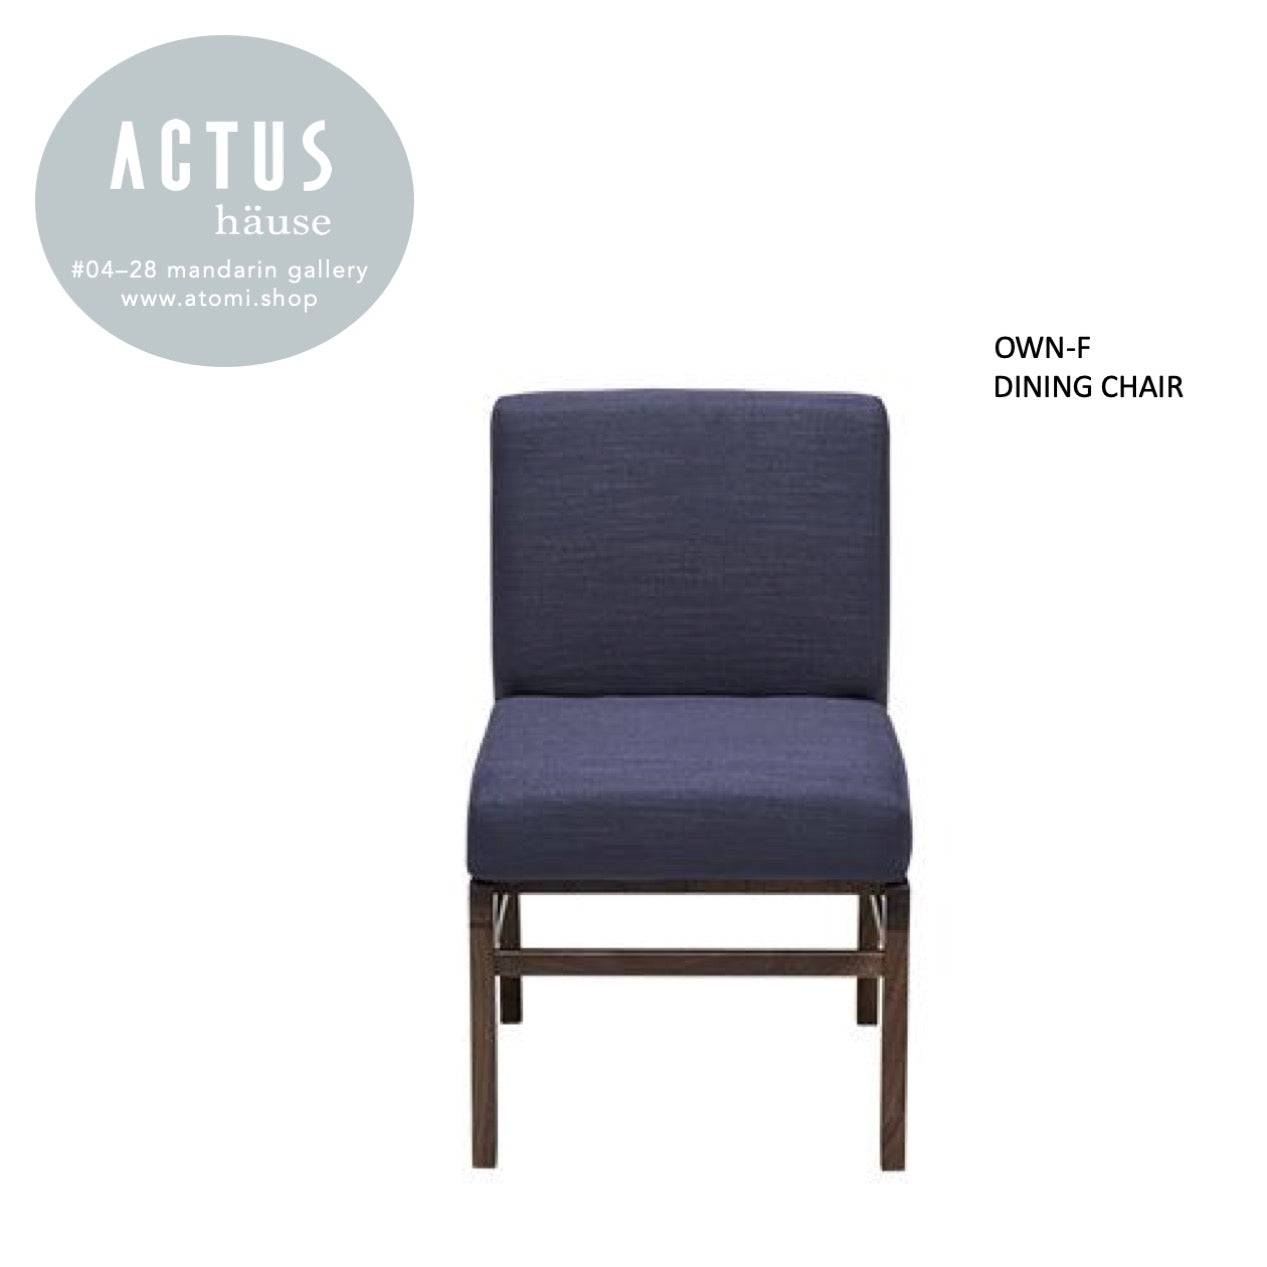 OWN-F Dining Chair - Wooden legs